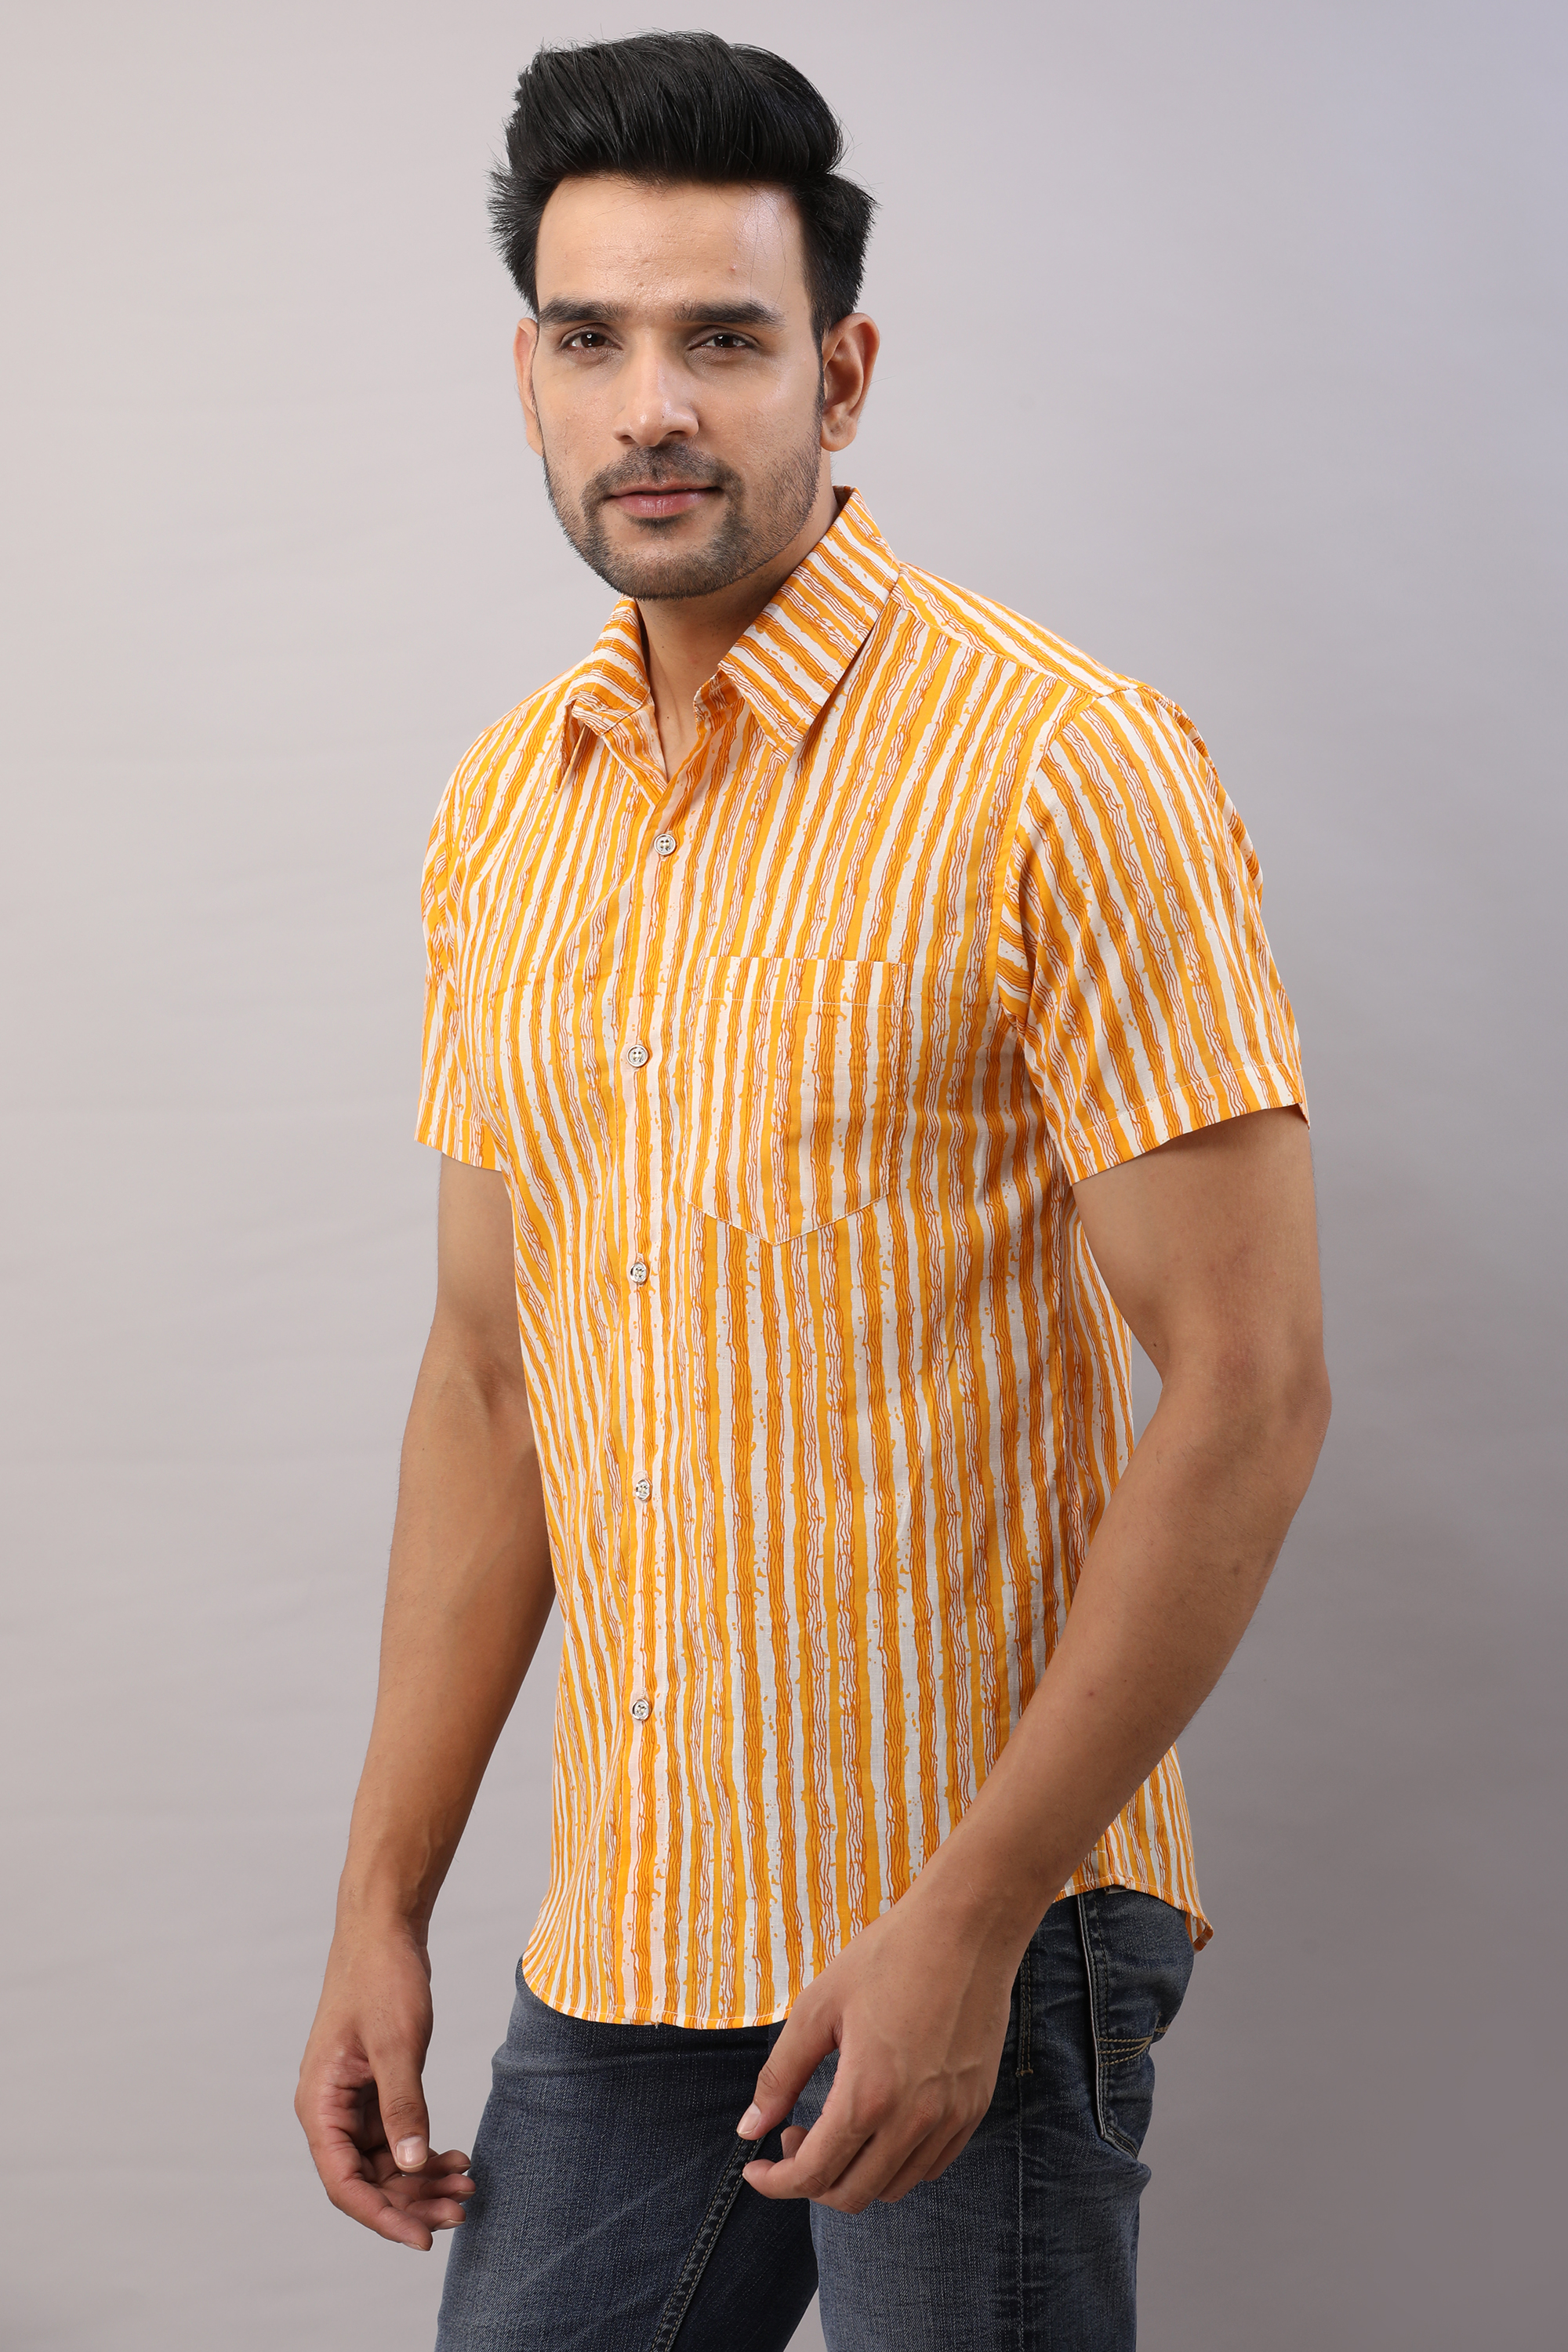 FrionKandy Cotton Striped Casual Yellow Regular Shirt For Men - 2XL